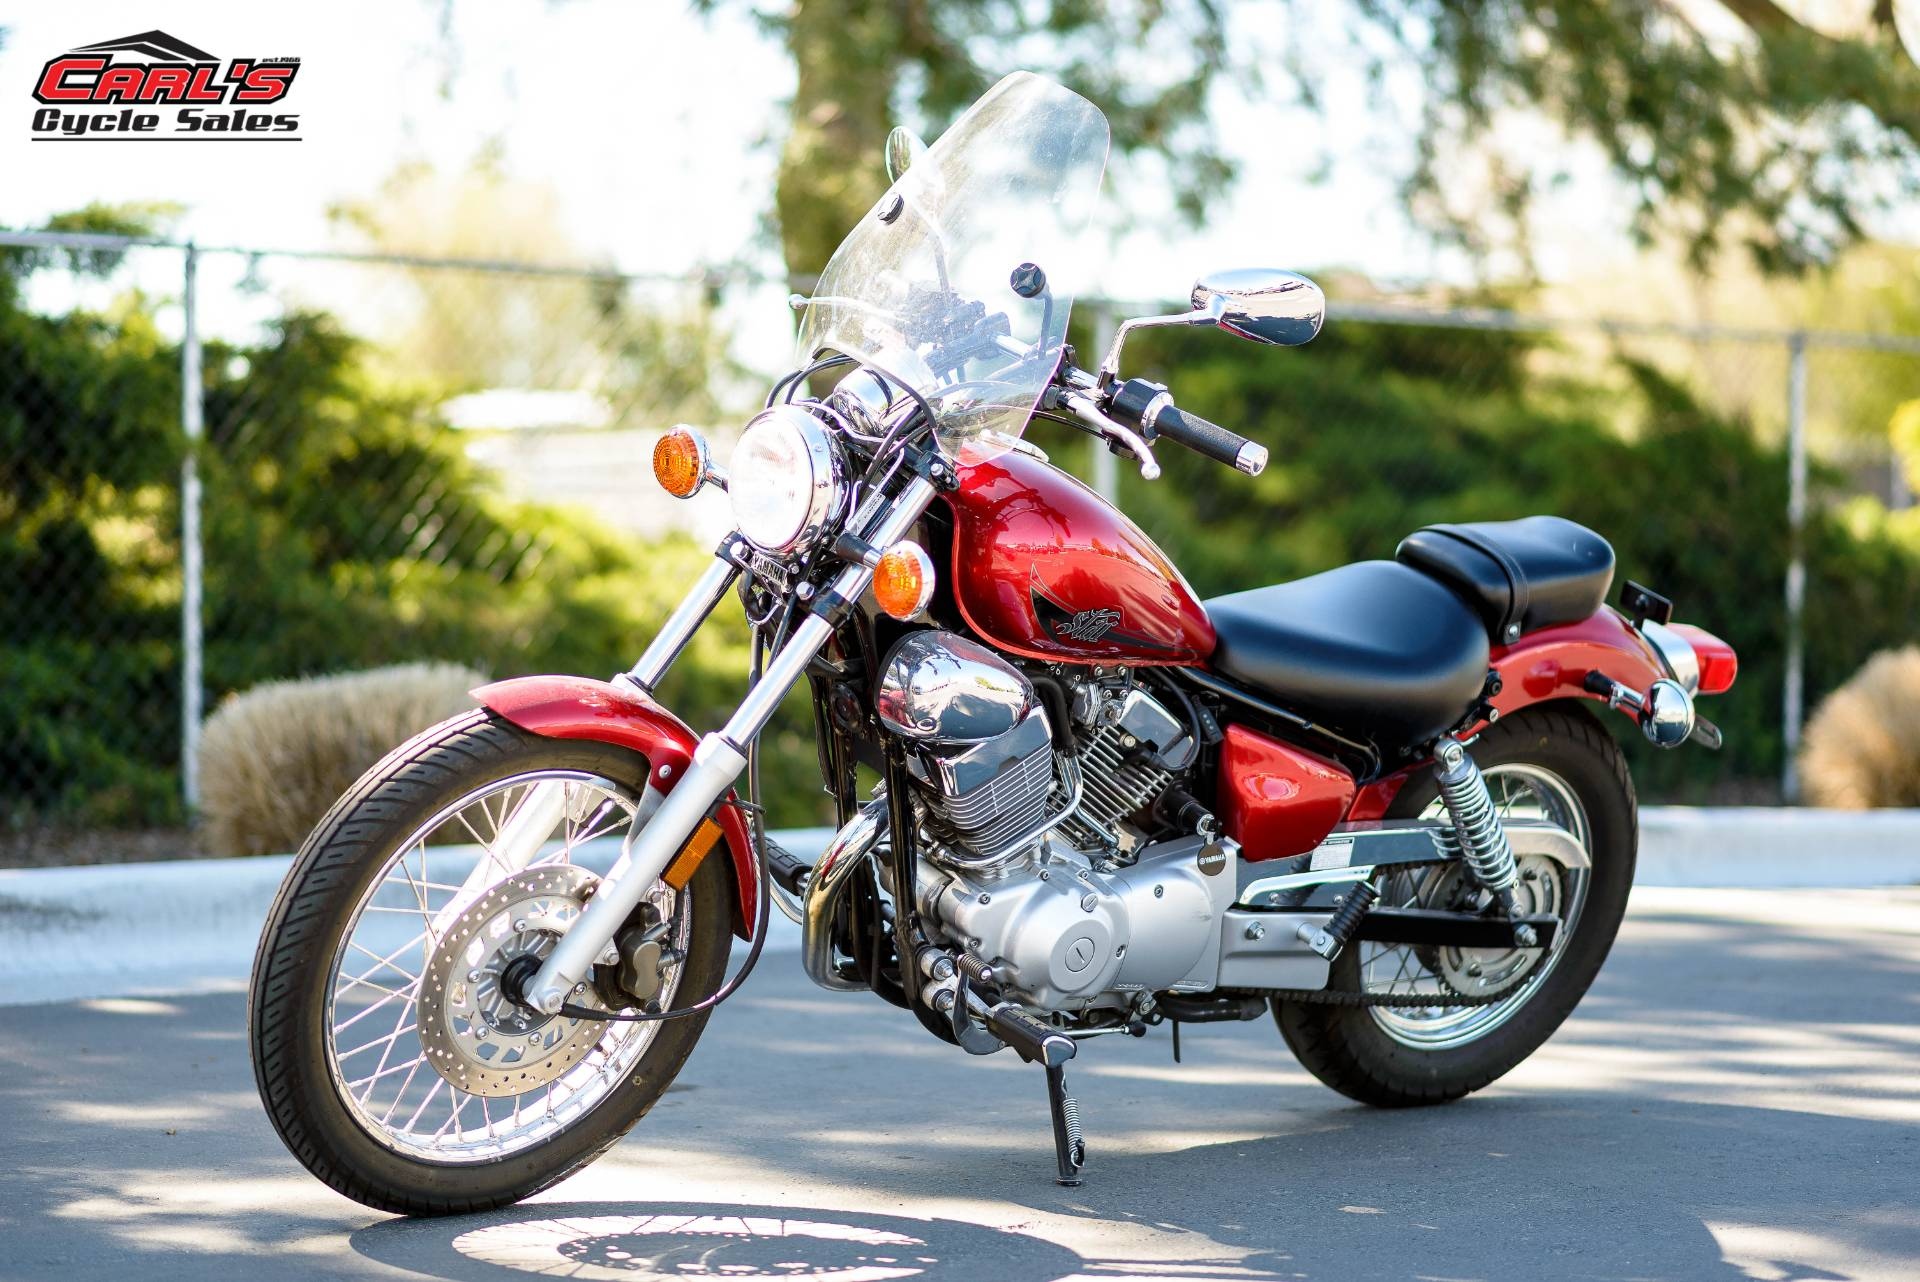 2014 Yamaha V Star 250 in Boise, Idaho